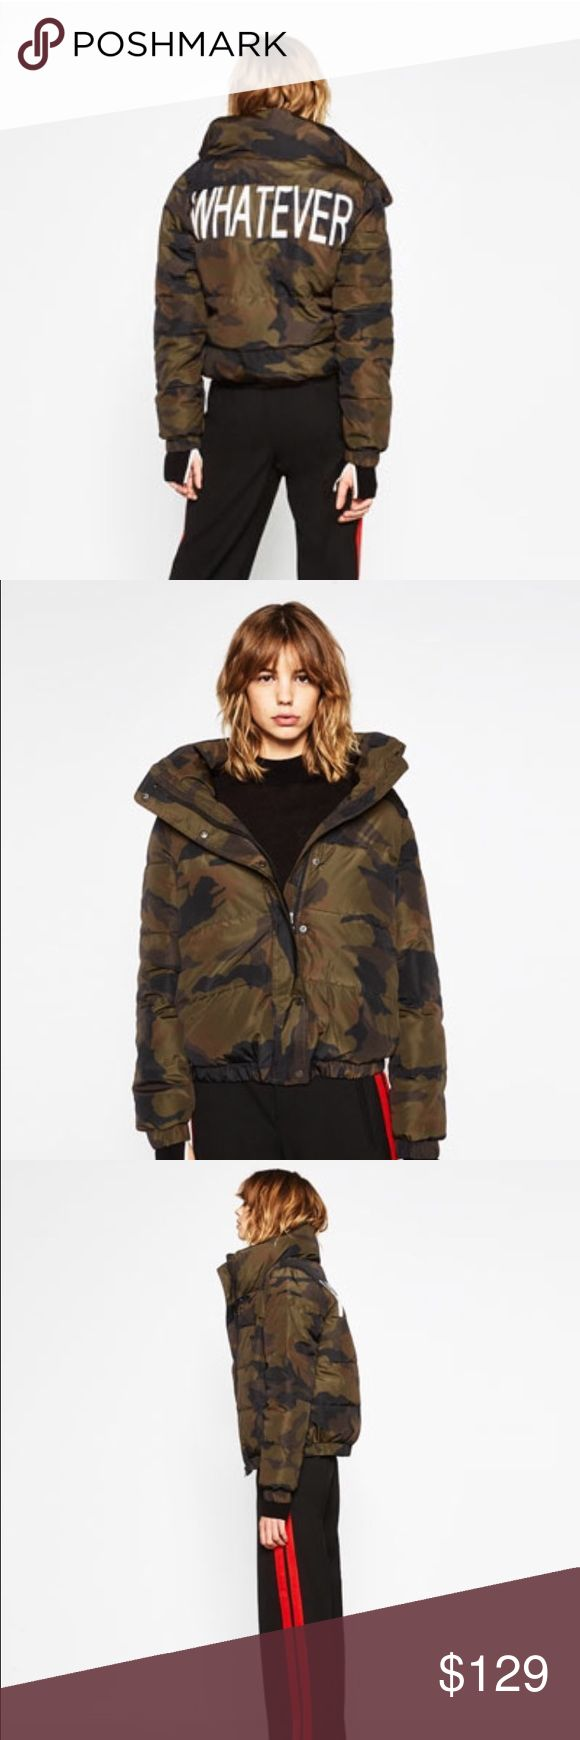 Zara jacket Brand new with tag Zara camouflage jacket in size Medium !! Super chic !! Bloggers favorite !! Sold out online and in stores !! Get it while you can !! 😡NO TRADE 😡 Zara Jackets & Coats